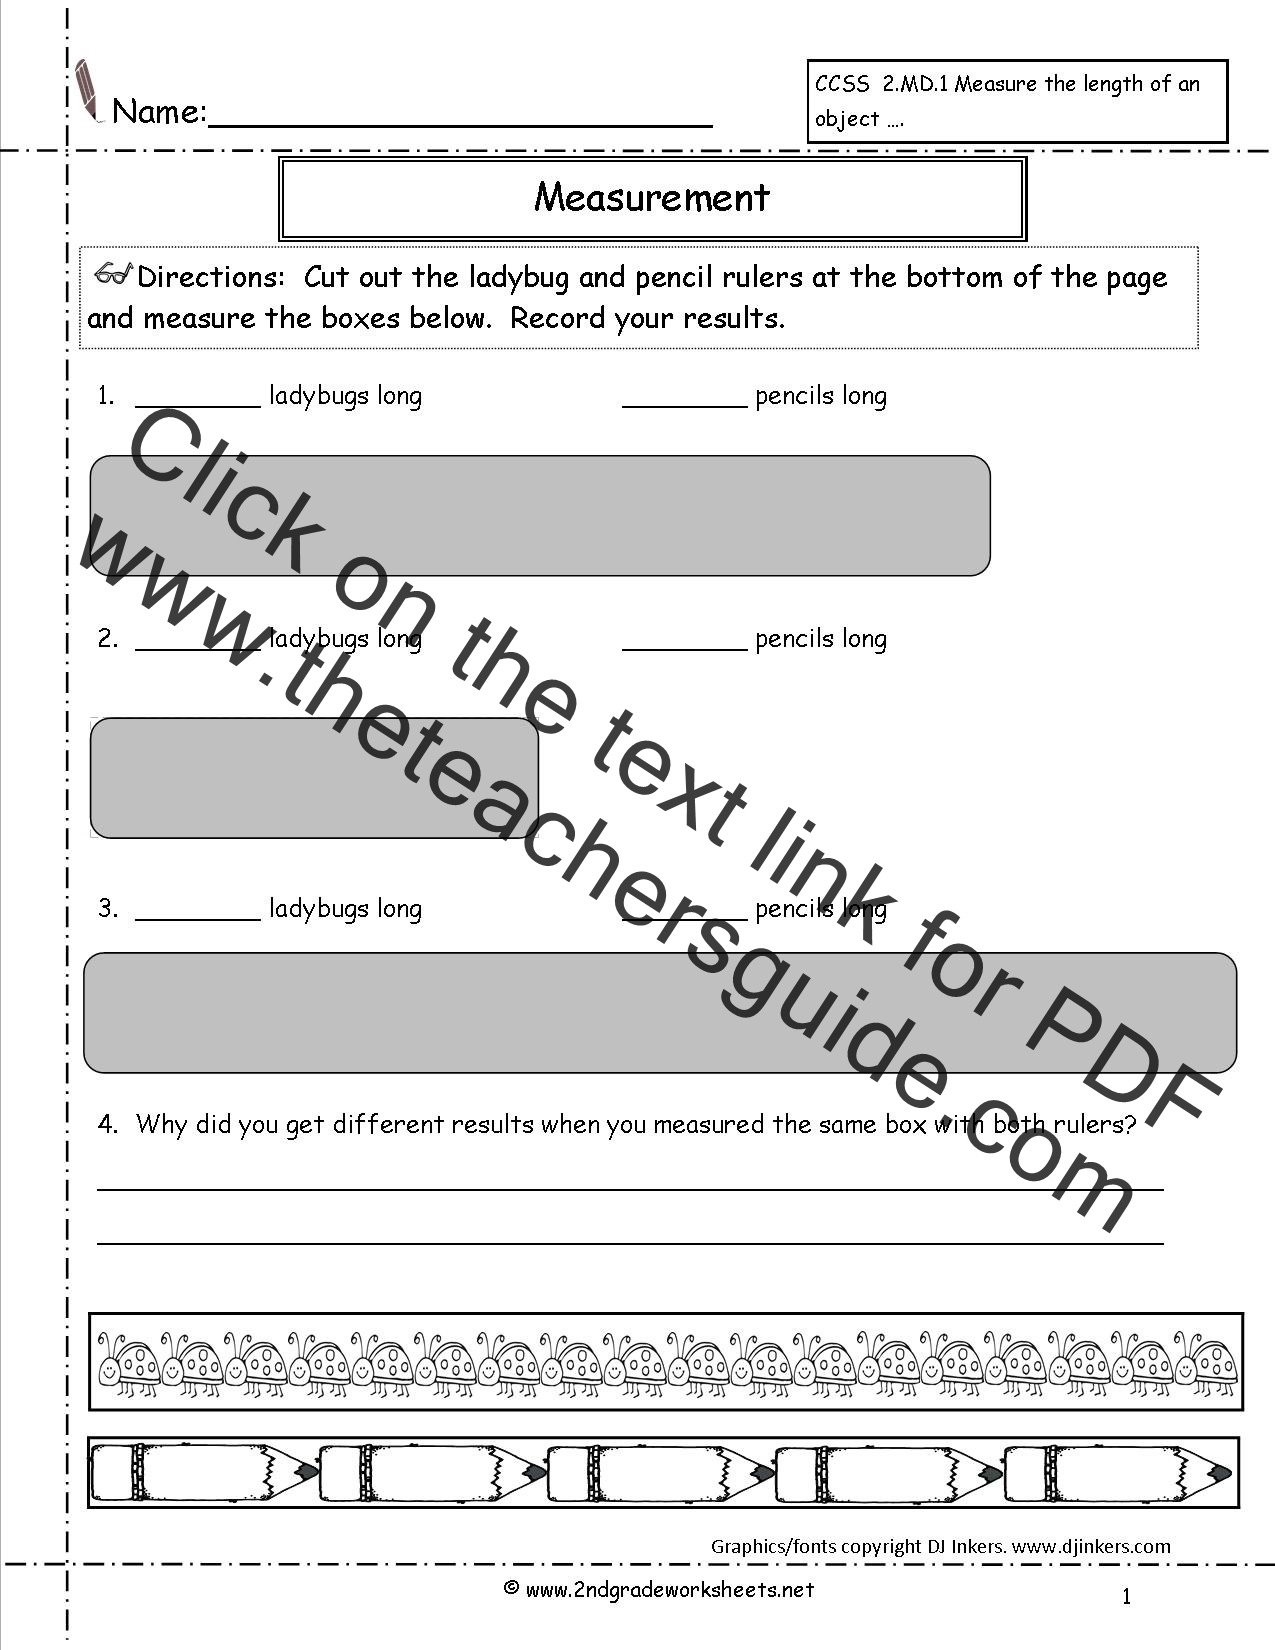 CCSS 2MD1 Worksheets Measuring Worksheets – Ruler Measurements Worksheets